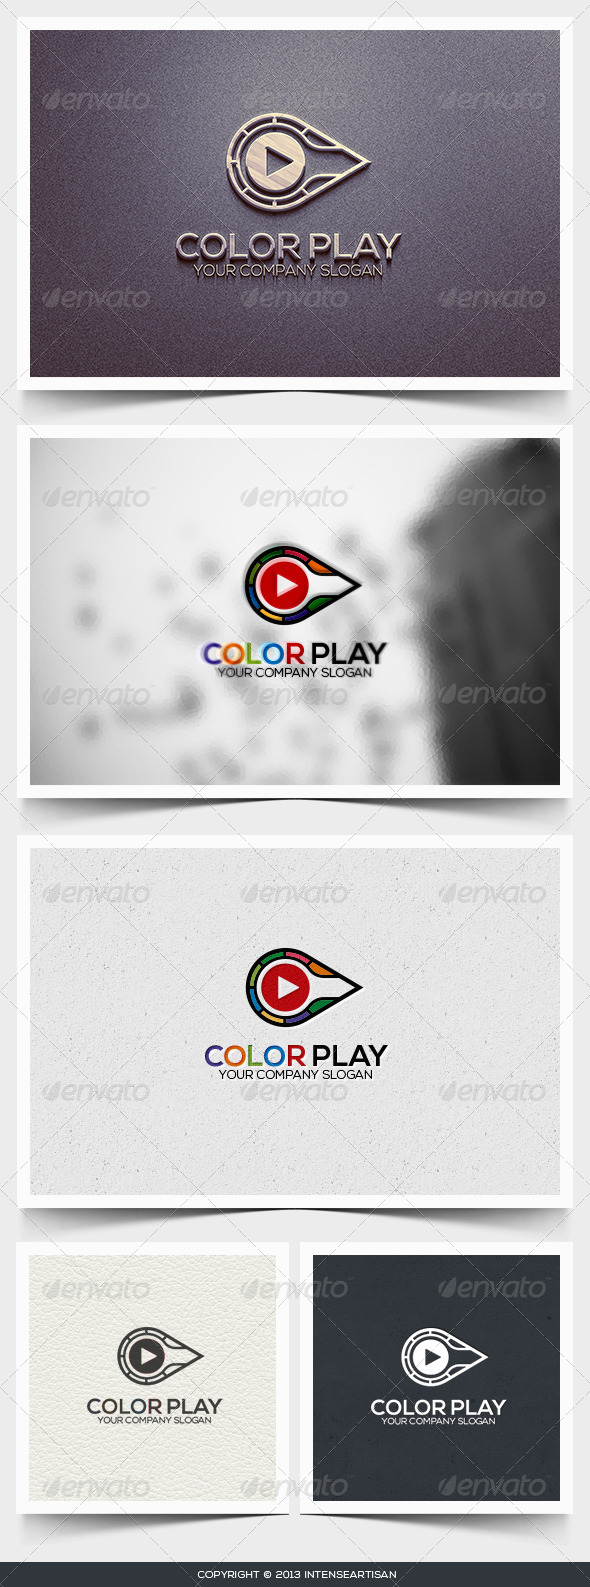 Color Play Logo Template - Objects Logo Templates